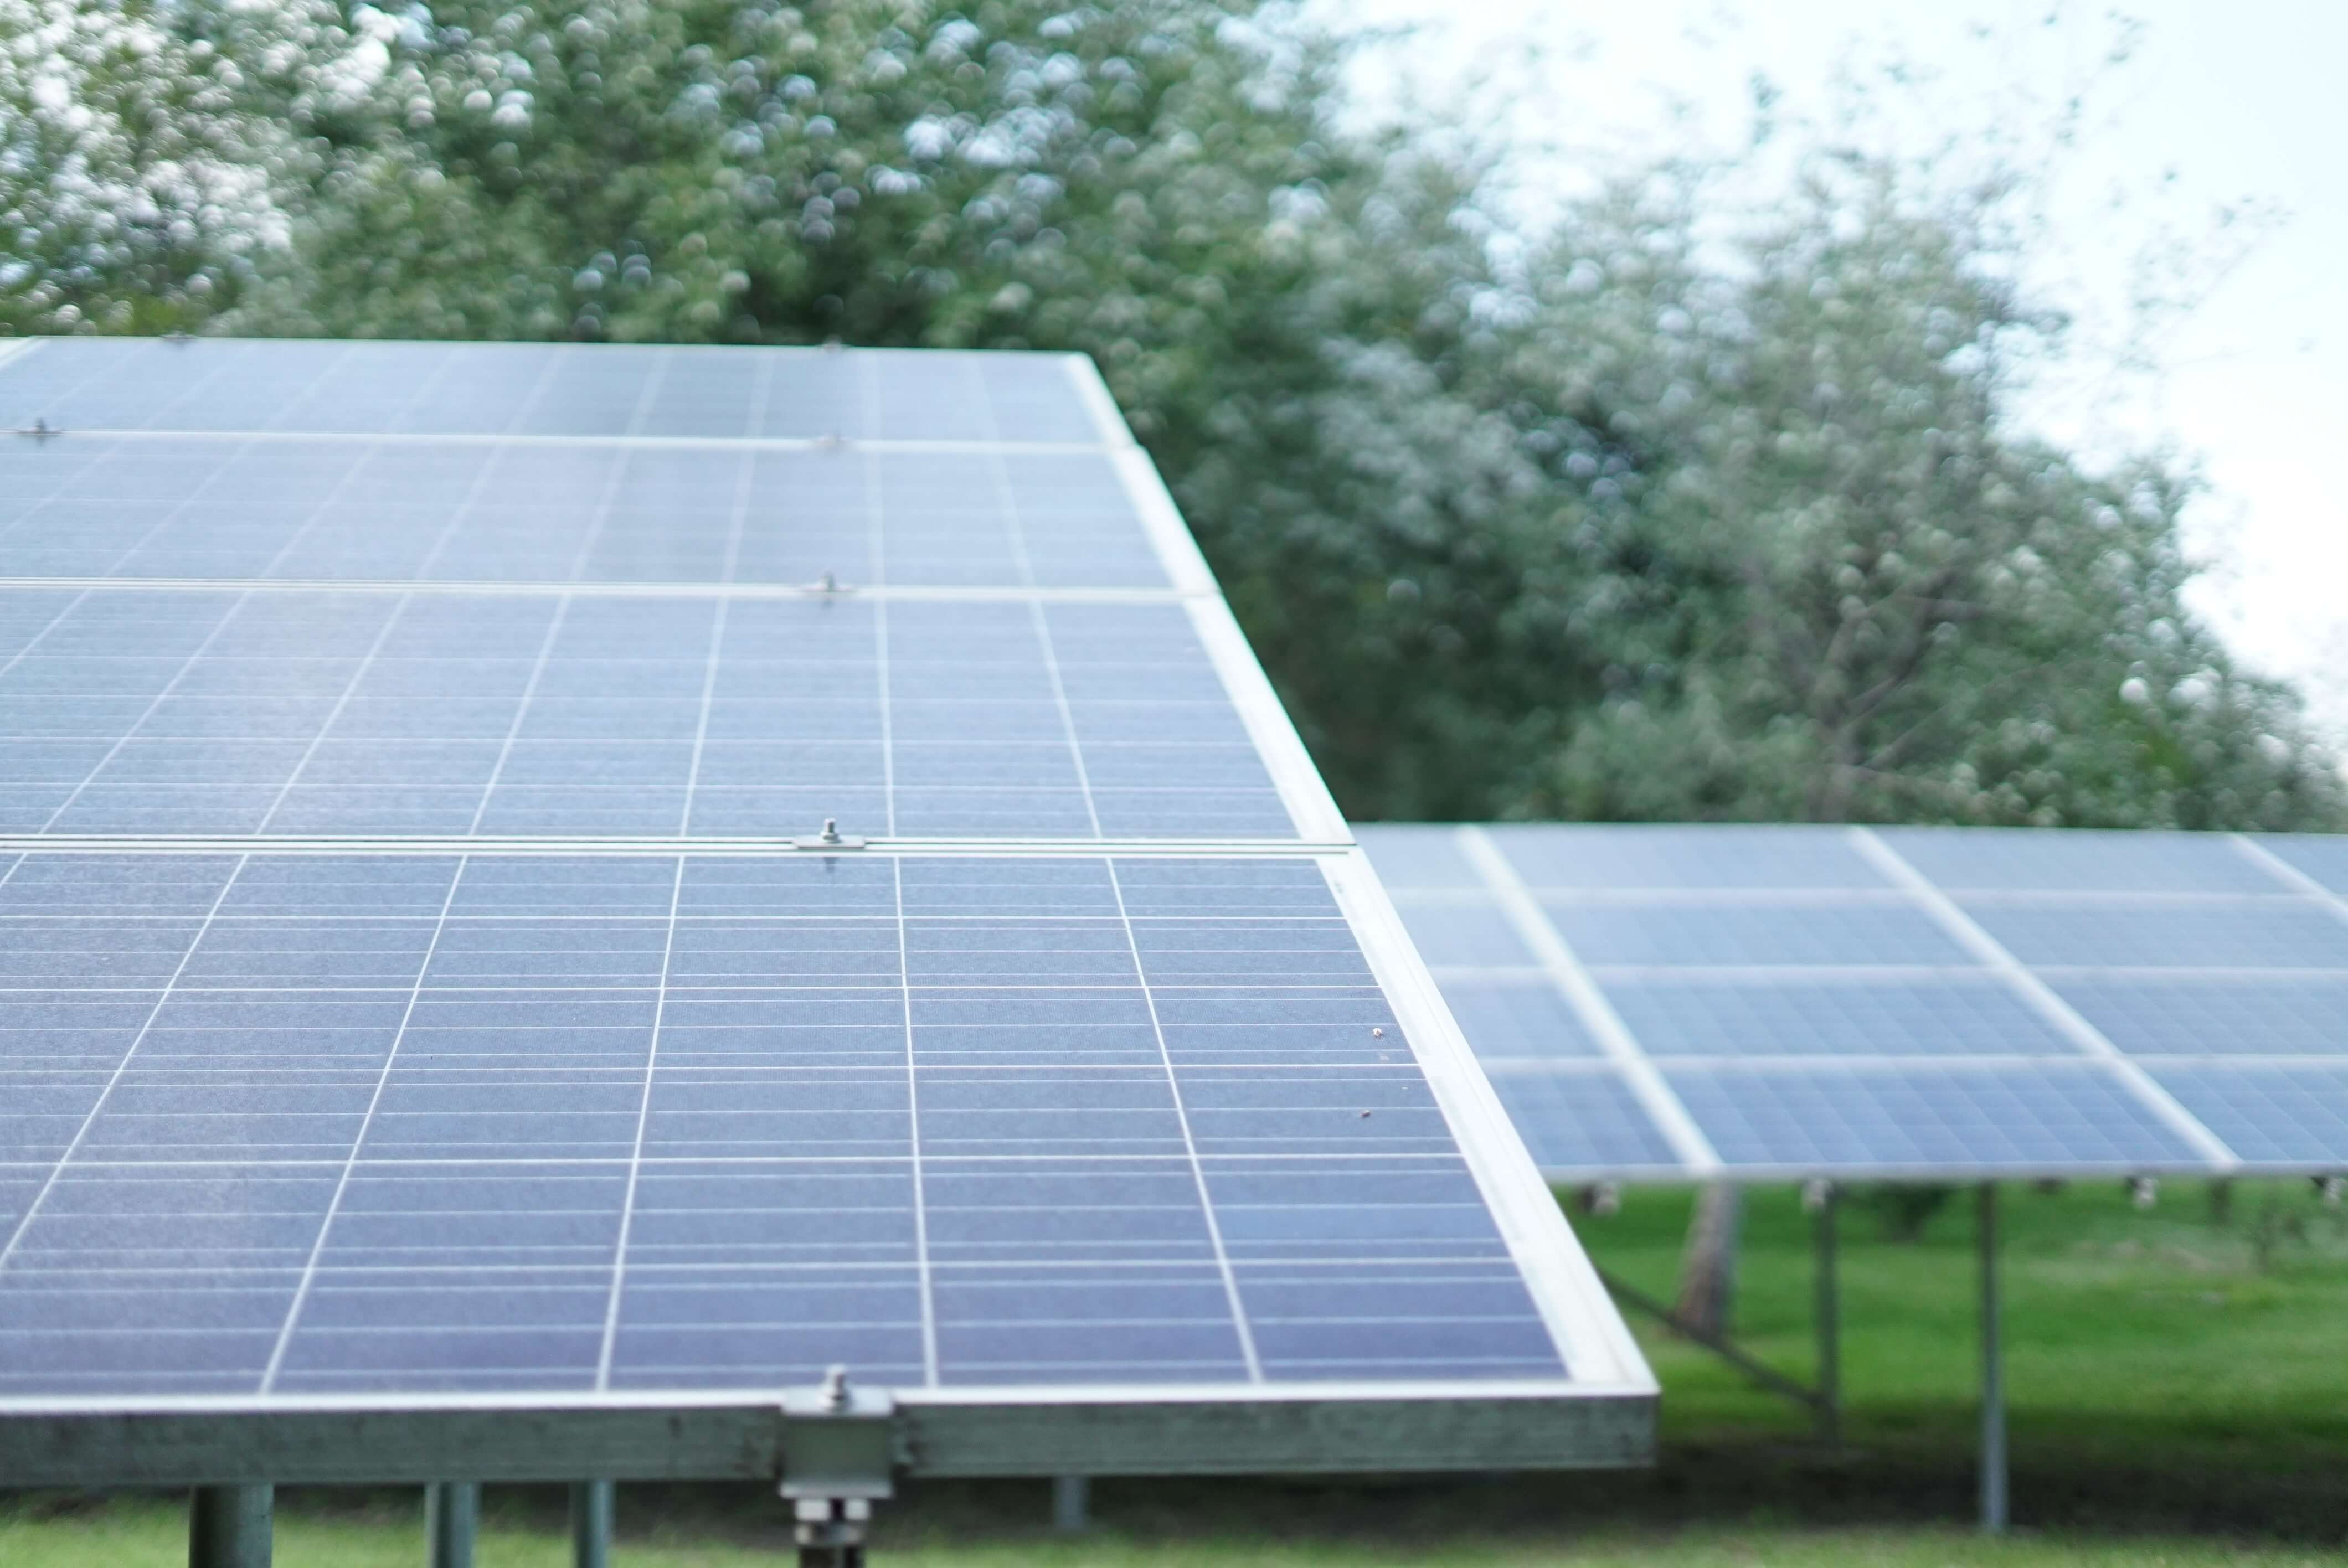 How Many Solar Panels Does It Take To Power a Tiny Home?